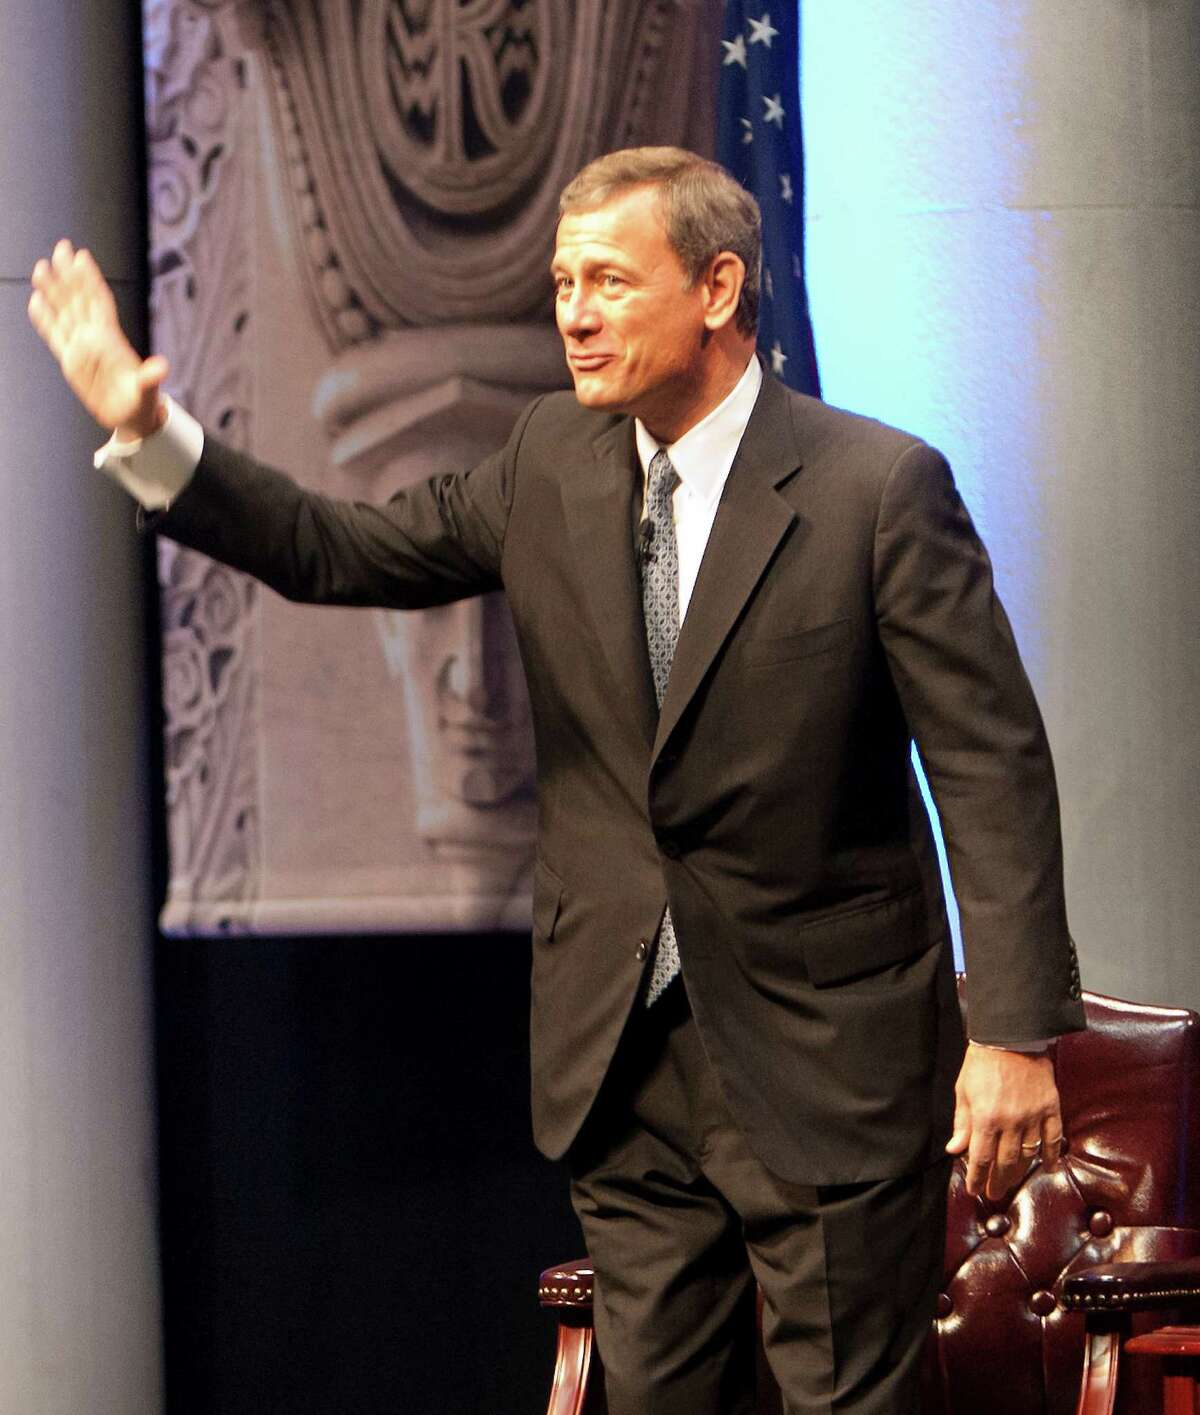 Chief Justice of the United States, John G. Roberts Jr., waves before